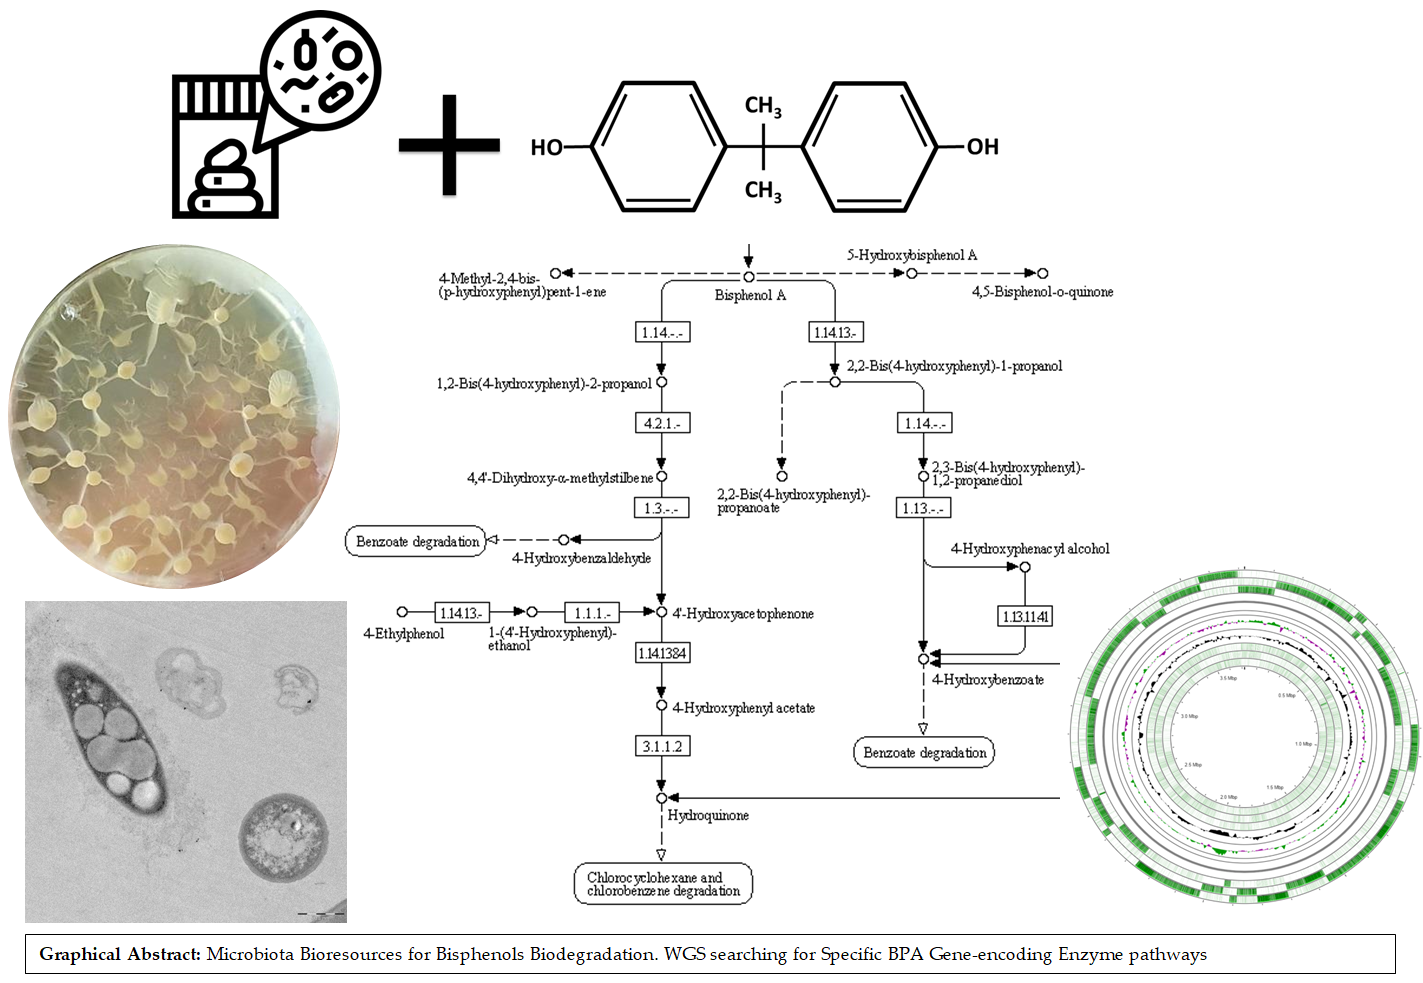 Microorganisms for BPA degradation with inulinase activity